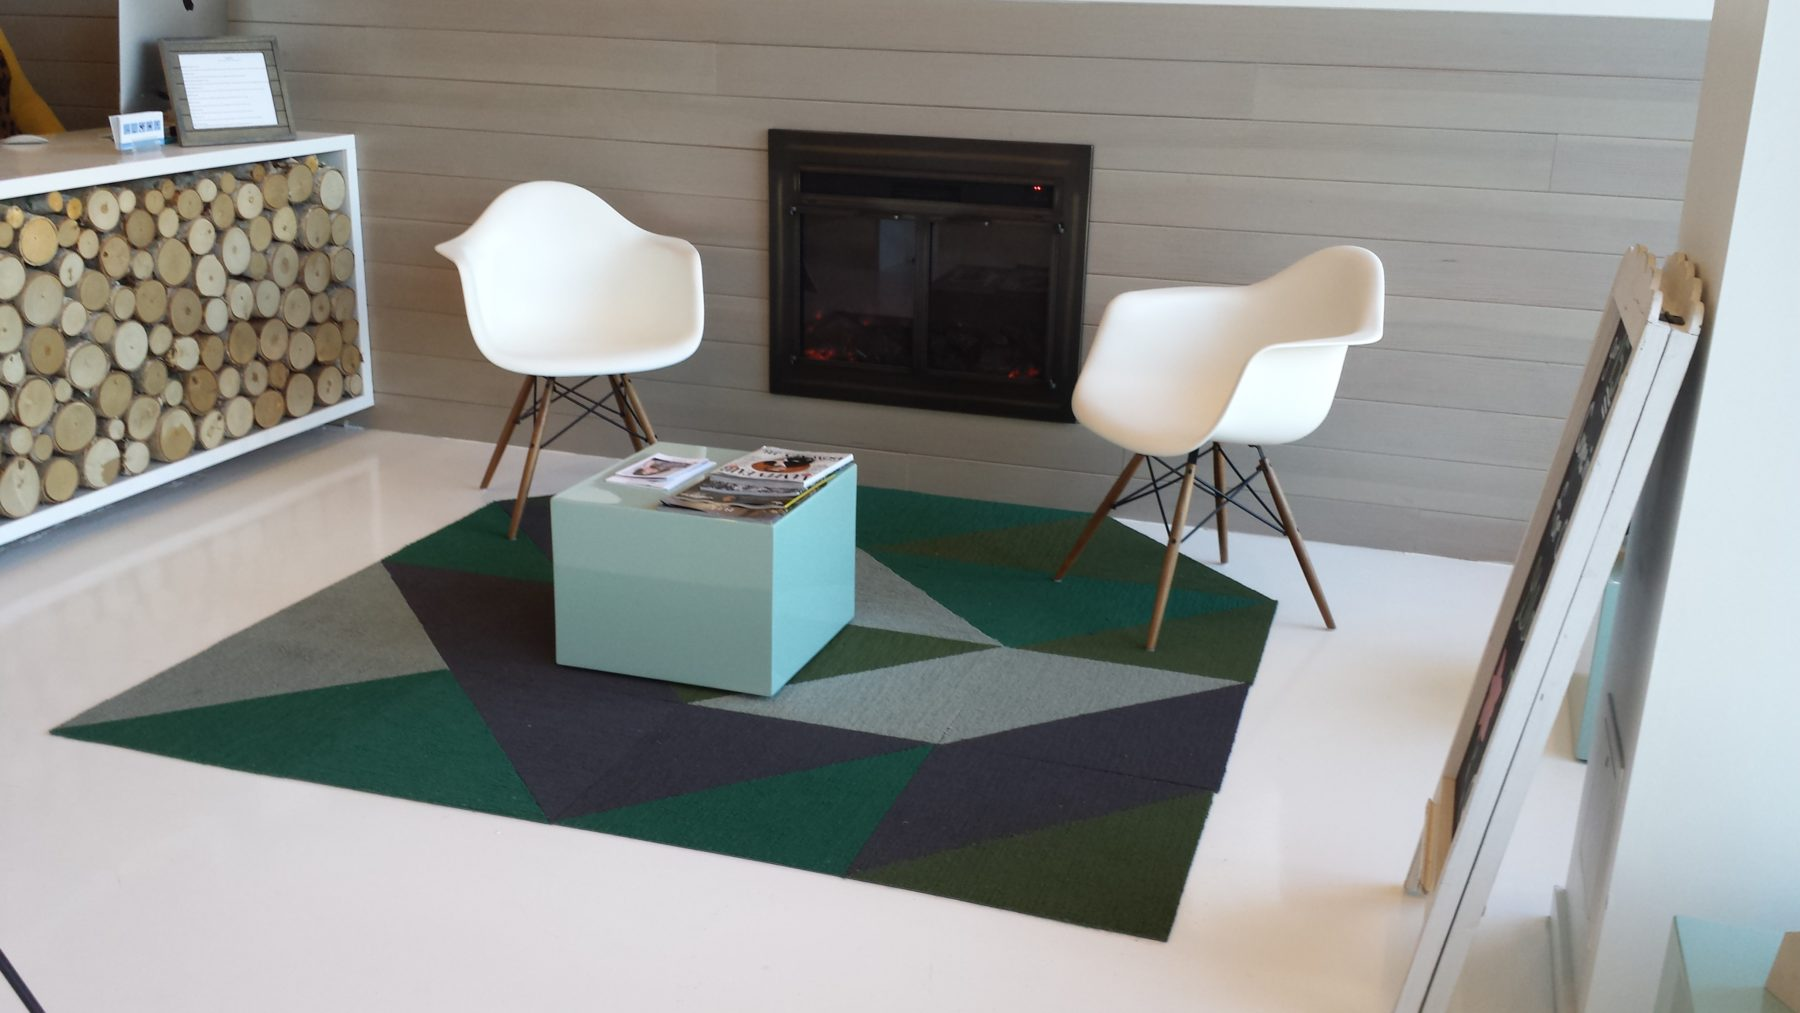 Skoah retail Flooring solutions